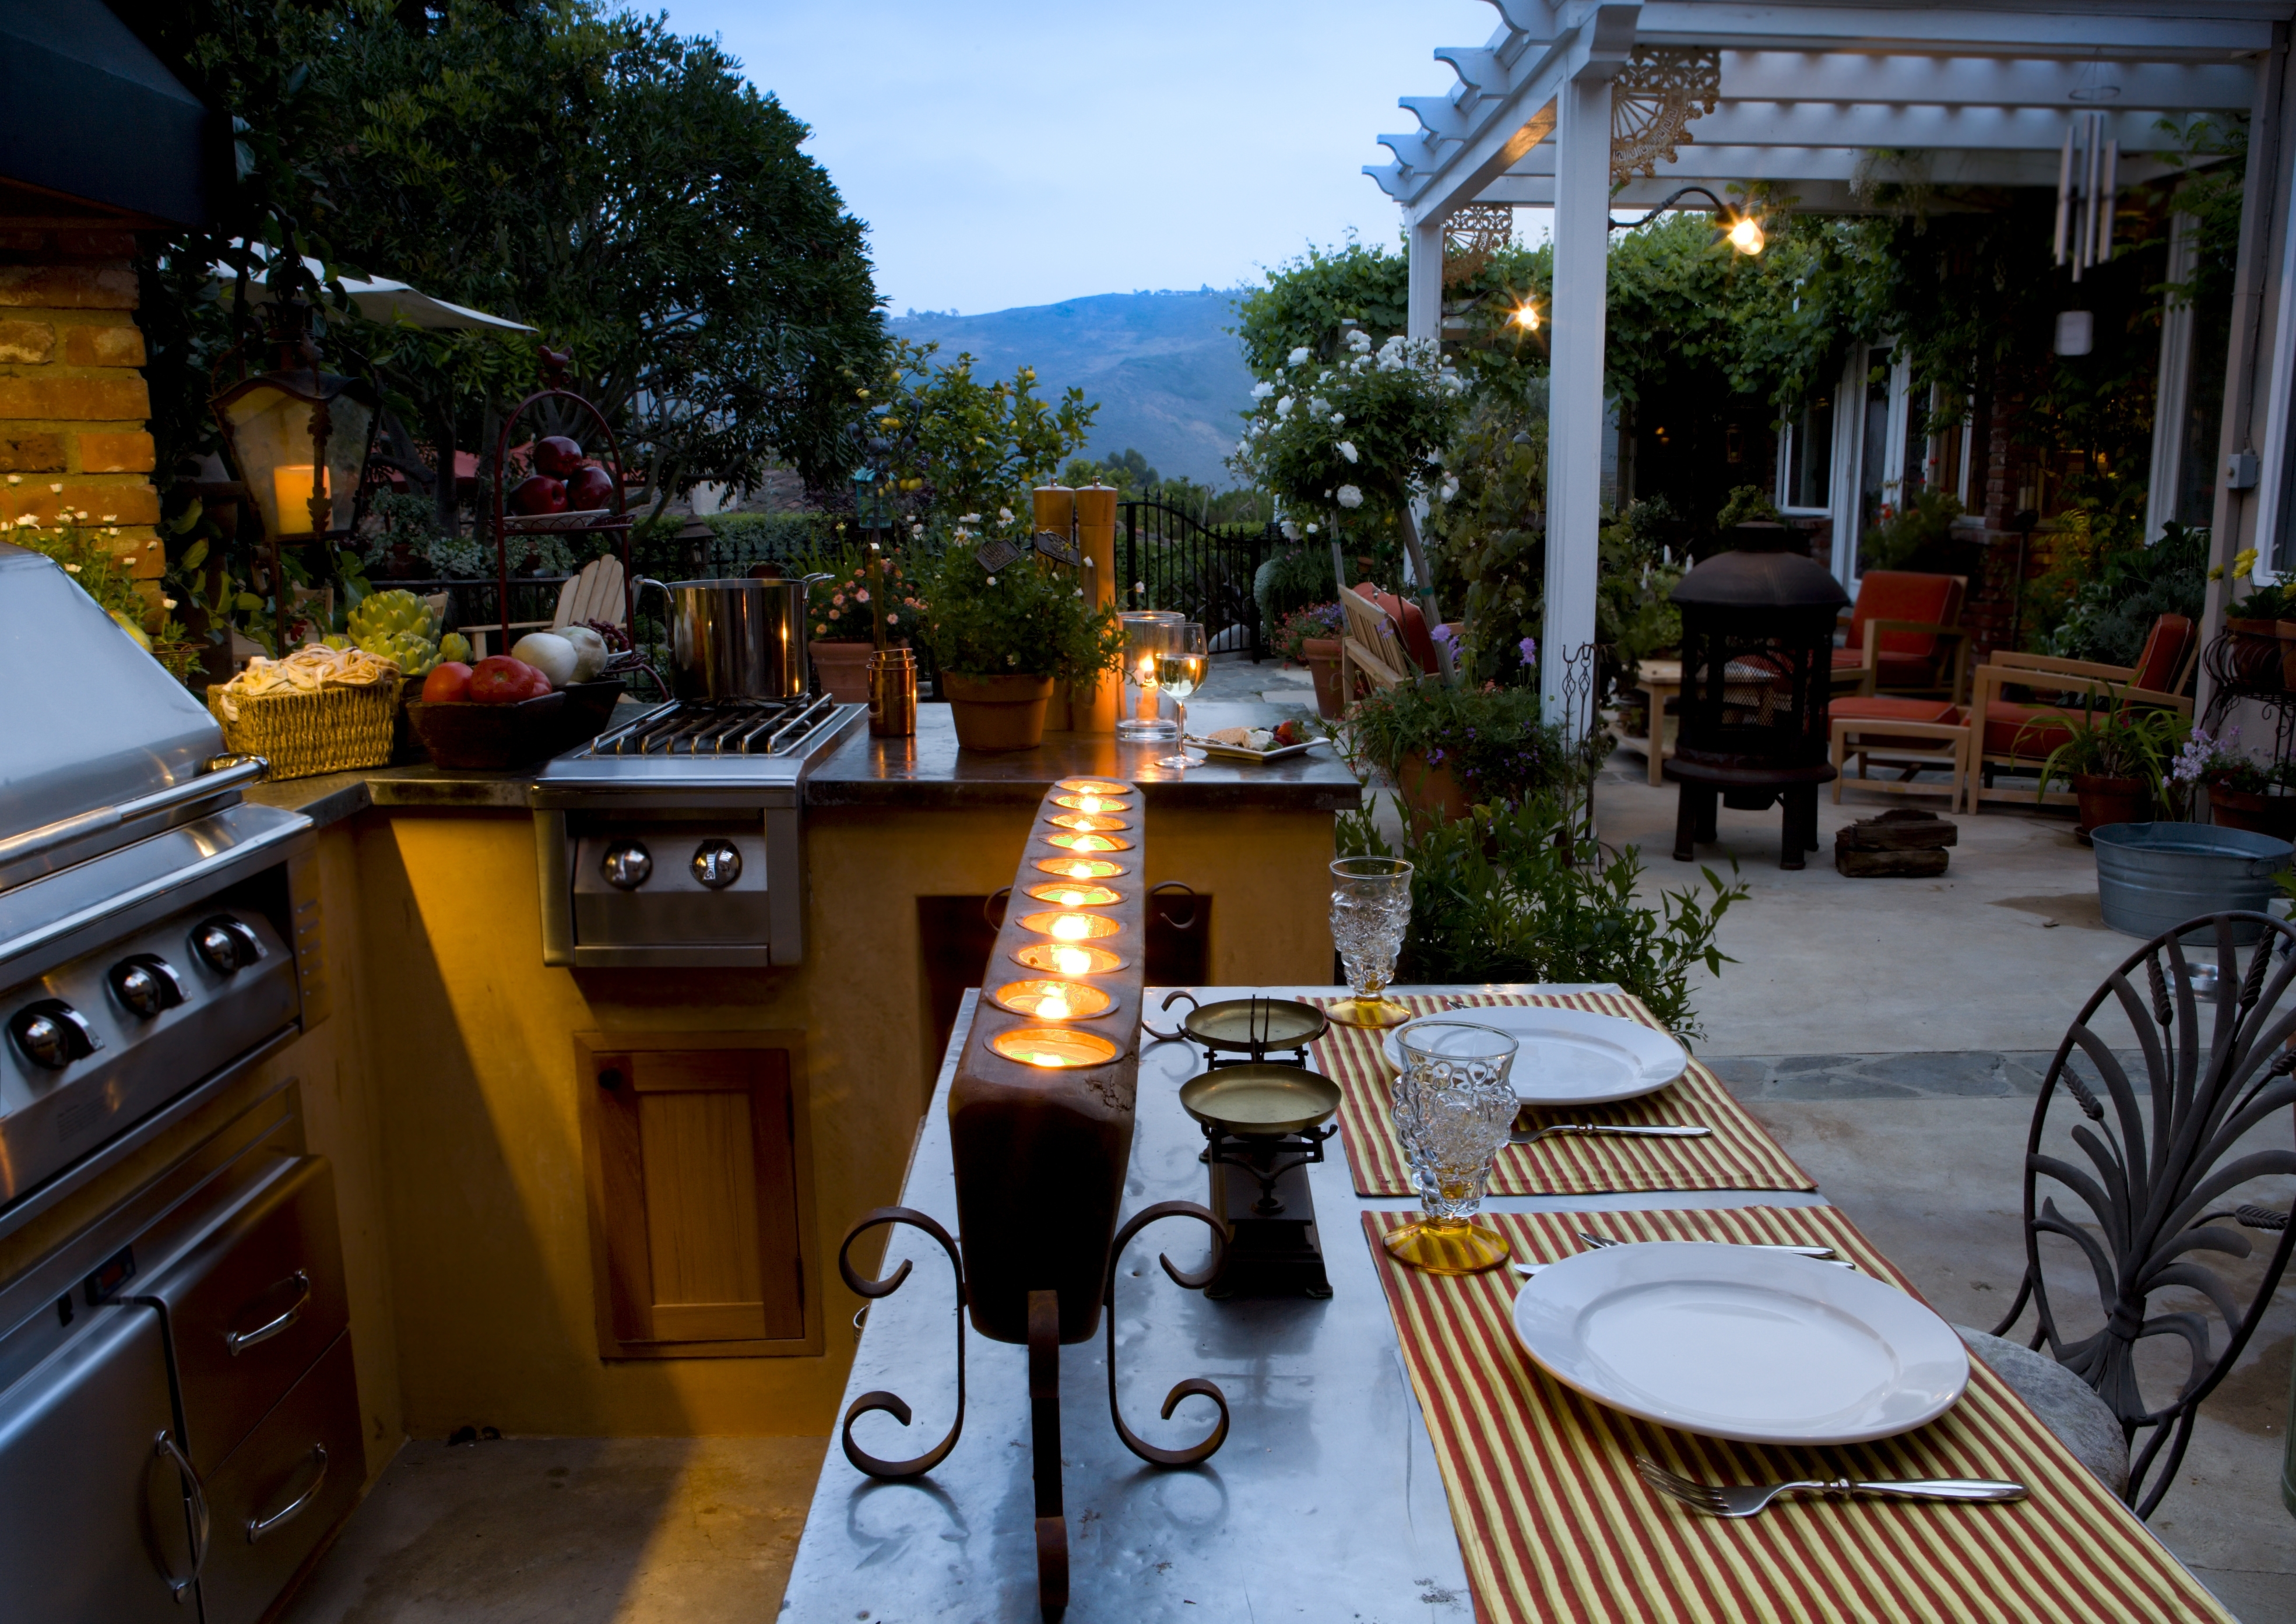 Making An Outdoor Kitchen Making An Outdoor Kitchen Out Of Your Deck Or Patio Dream